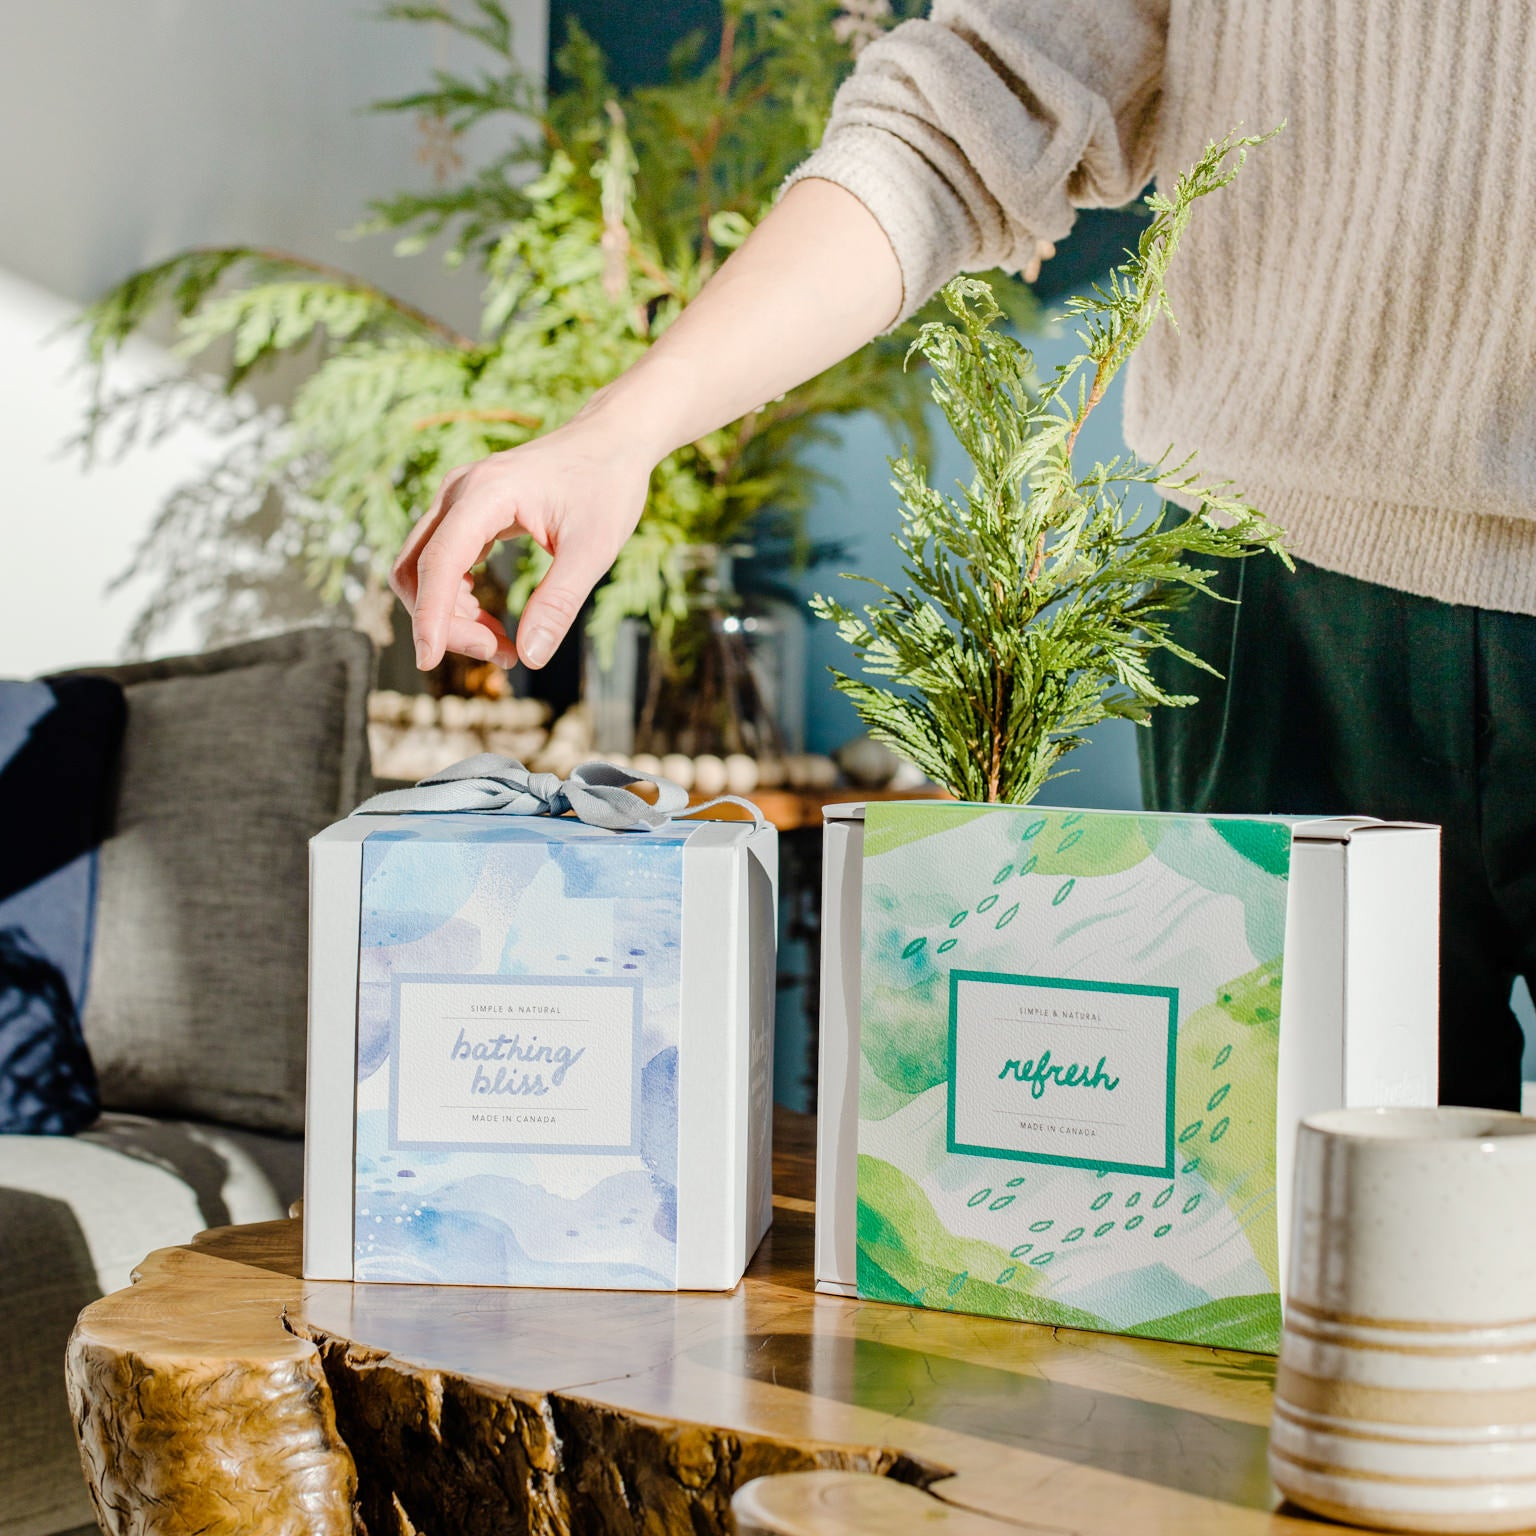 All-natural, made in Canada gift sets from Rocky Mountain Soap Company placed on a table as part of a holiday gift exchange like Secret Santa, White Elephant, or Draw Names.